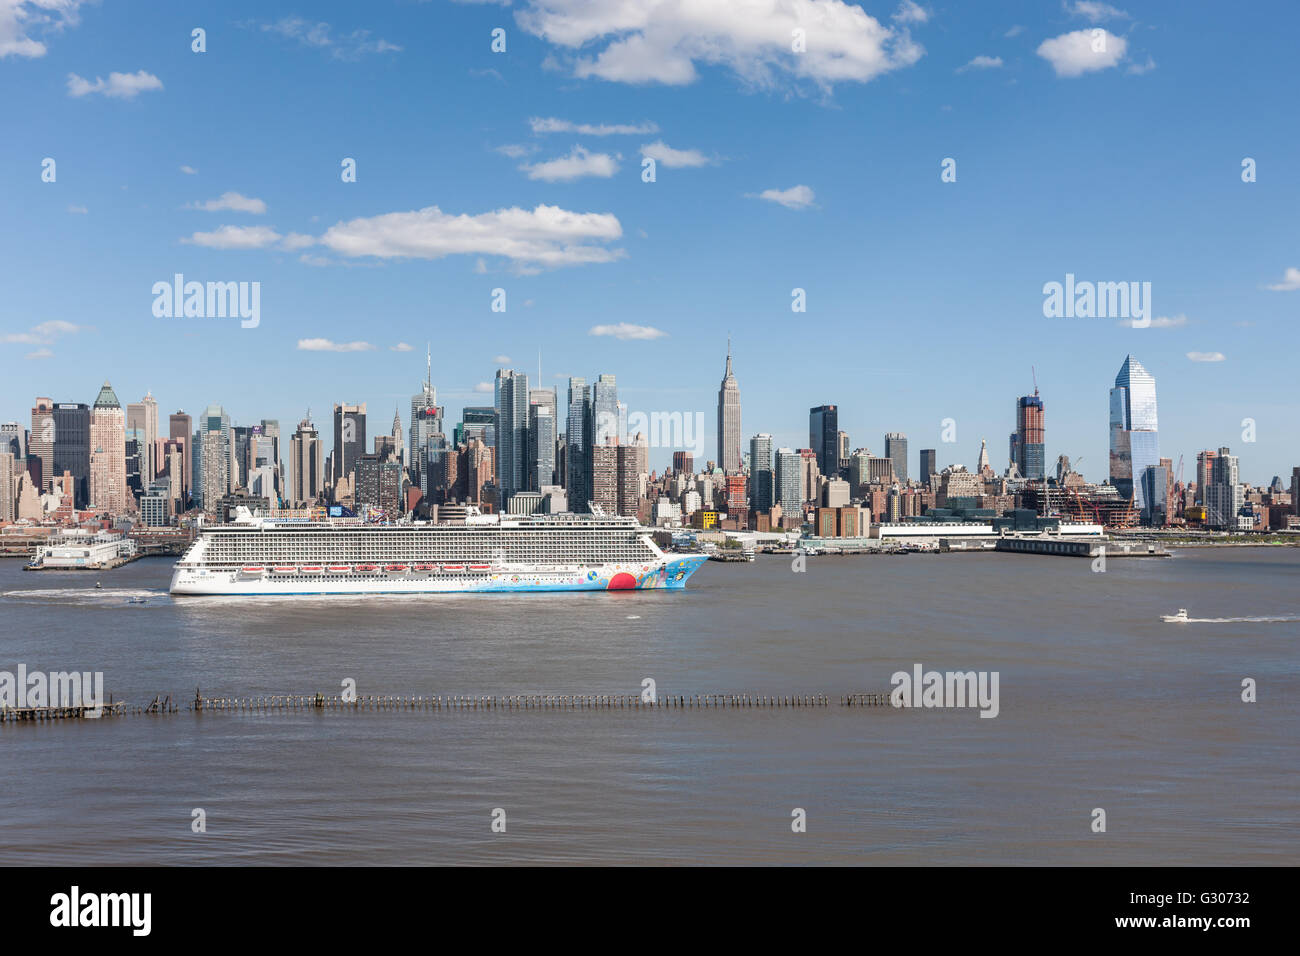 Cruise ship Norwegian Breakaway heads south on the Hudson River past the mid-town skyline of New York City. - Stock Image